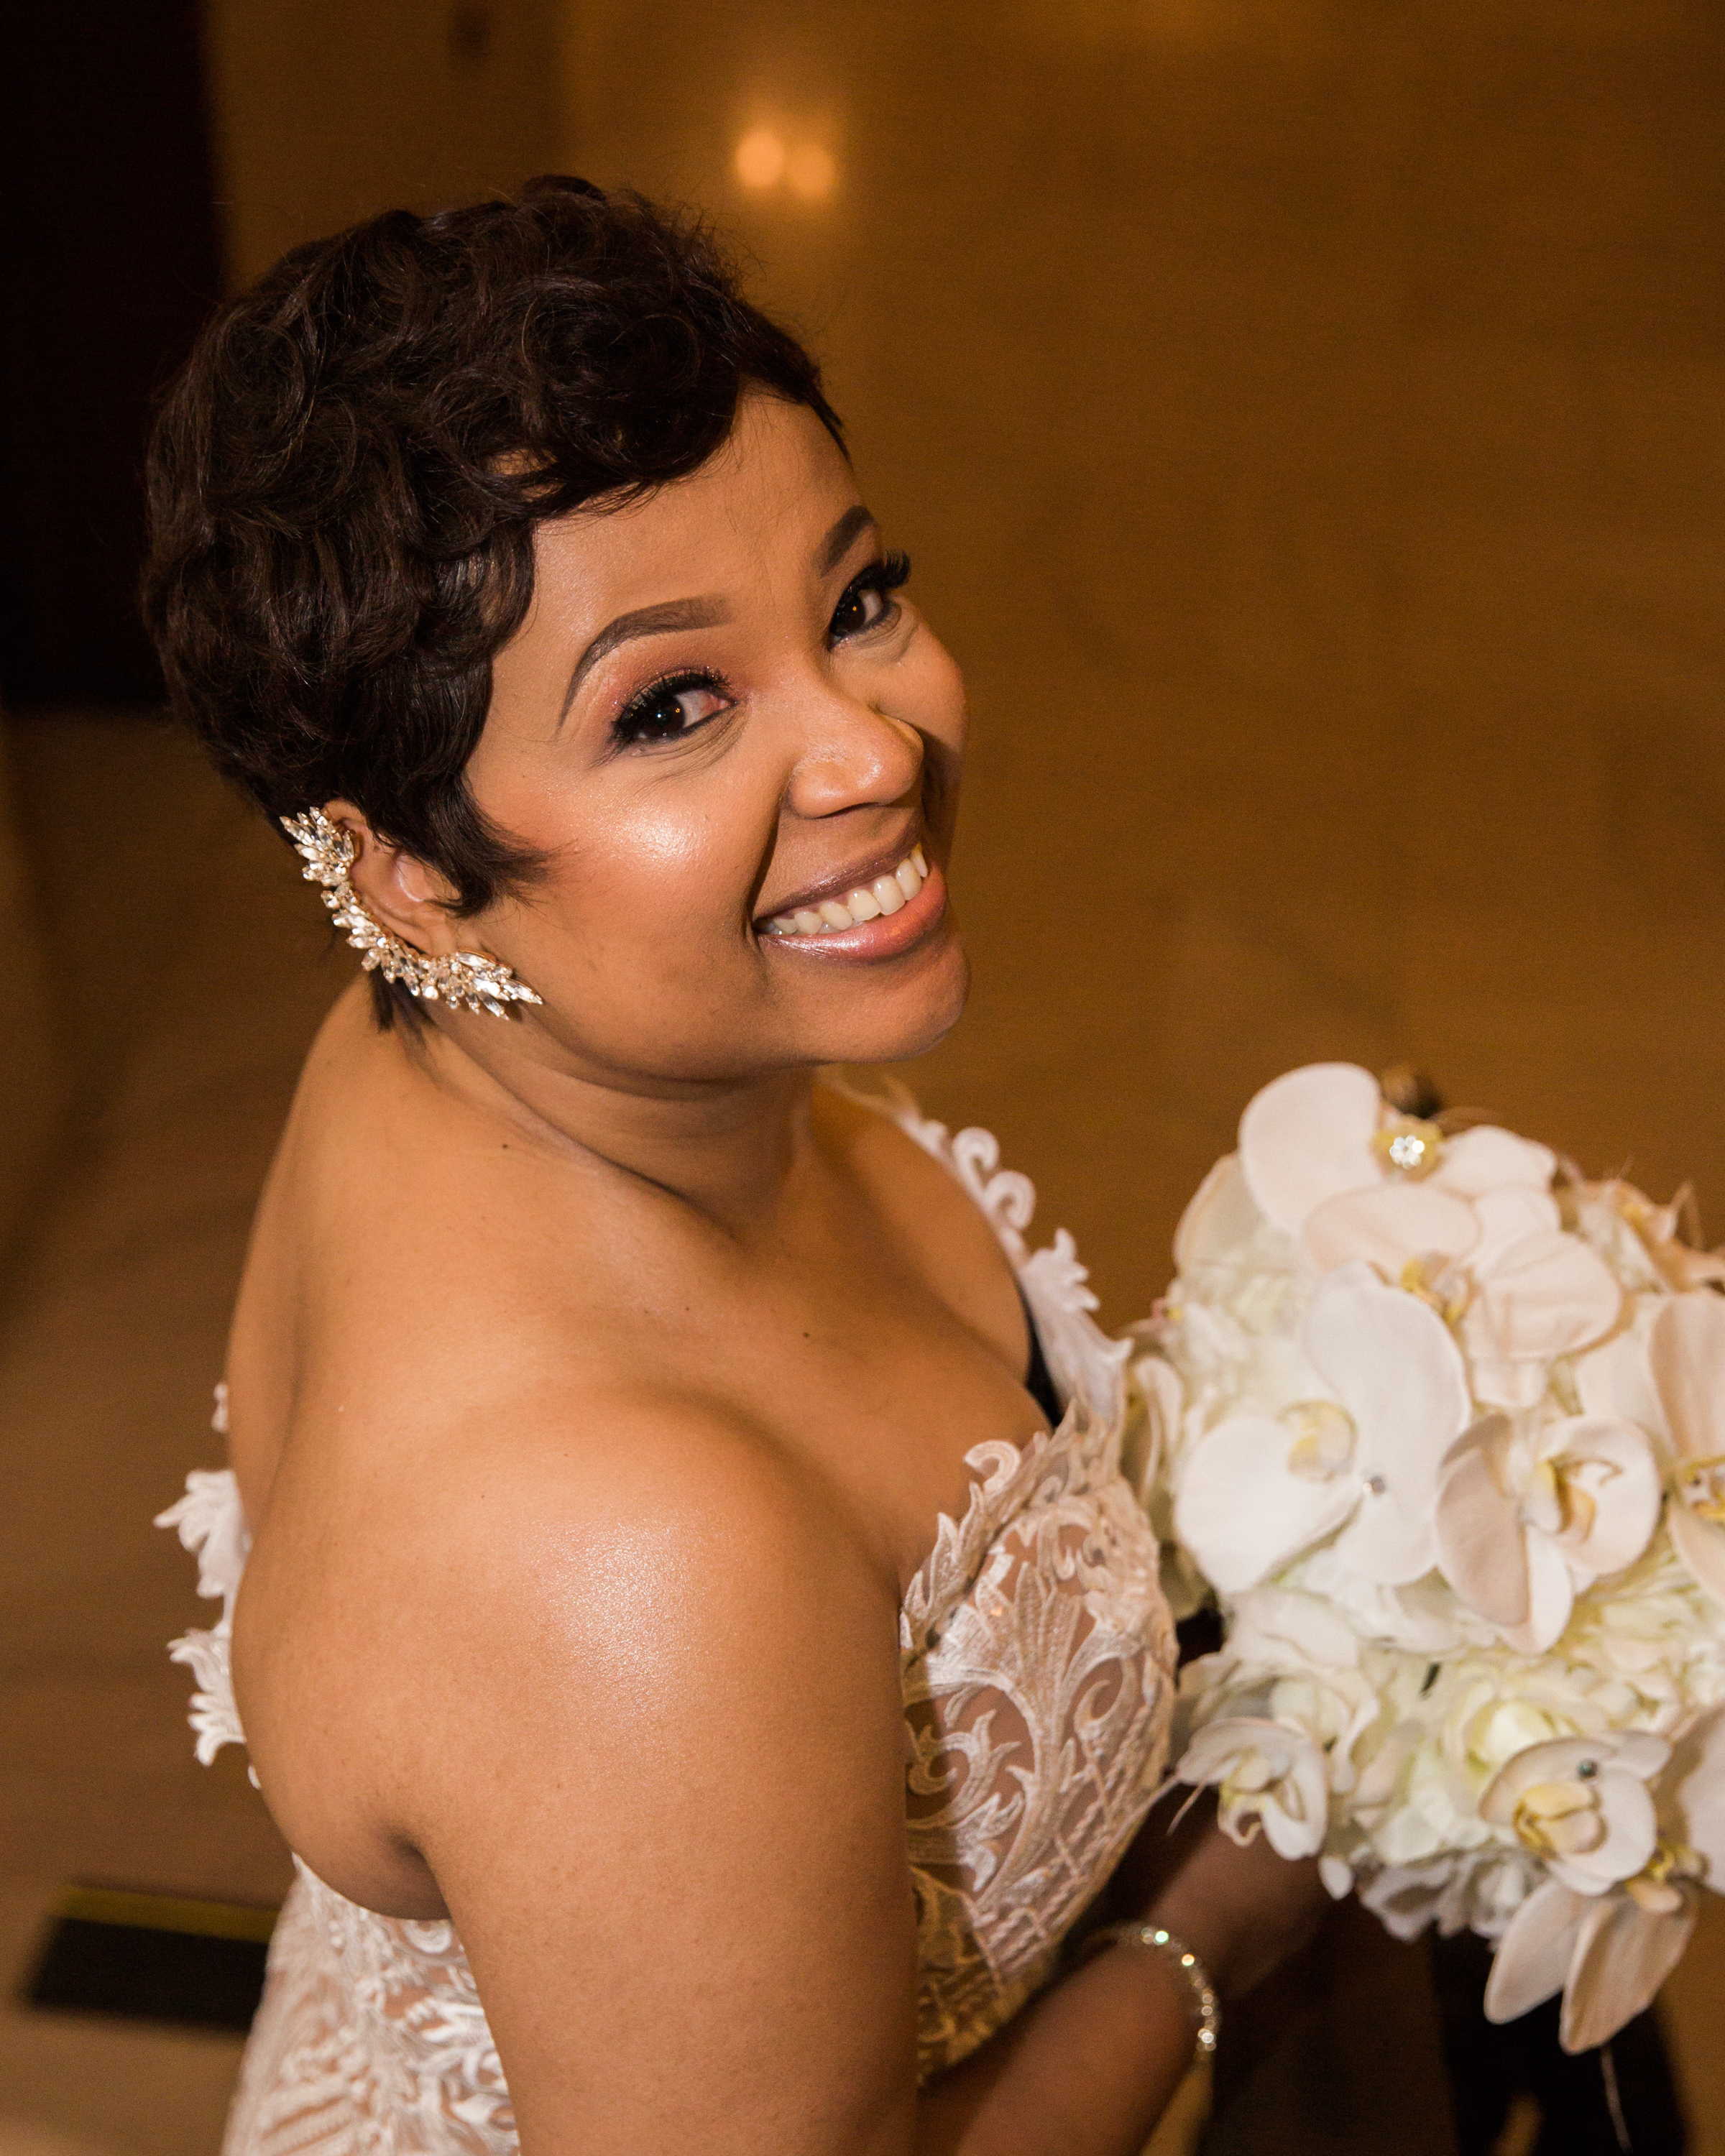 Best Classic Black Bride at The Grand Baltimore Maryland Husband and Wife Wedding Photographers Megapixels Media (60 of 98).jpg